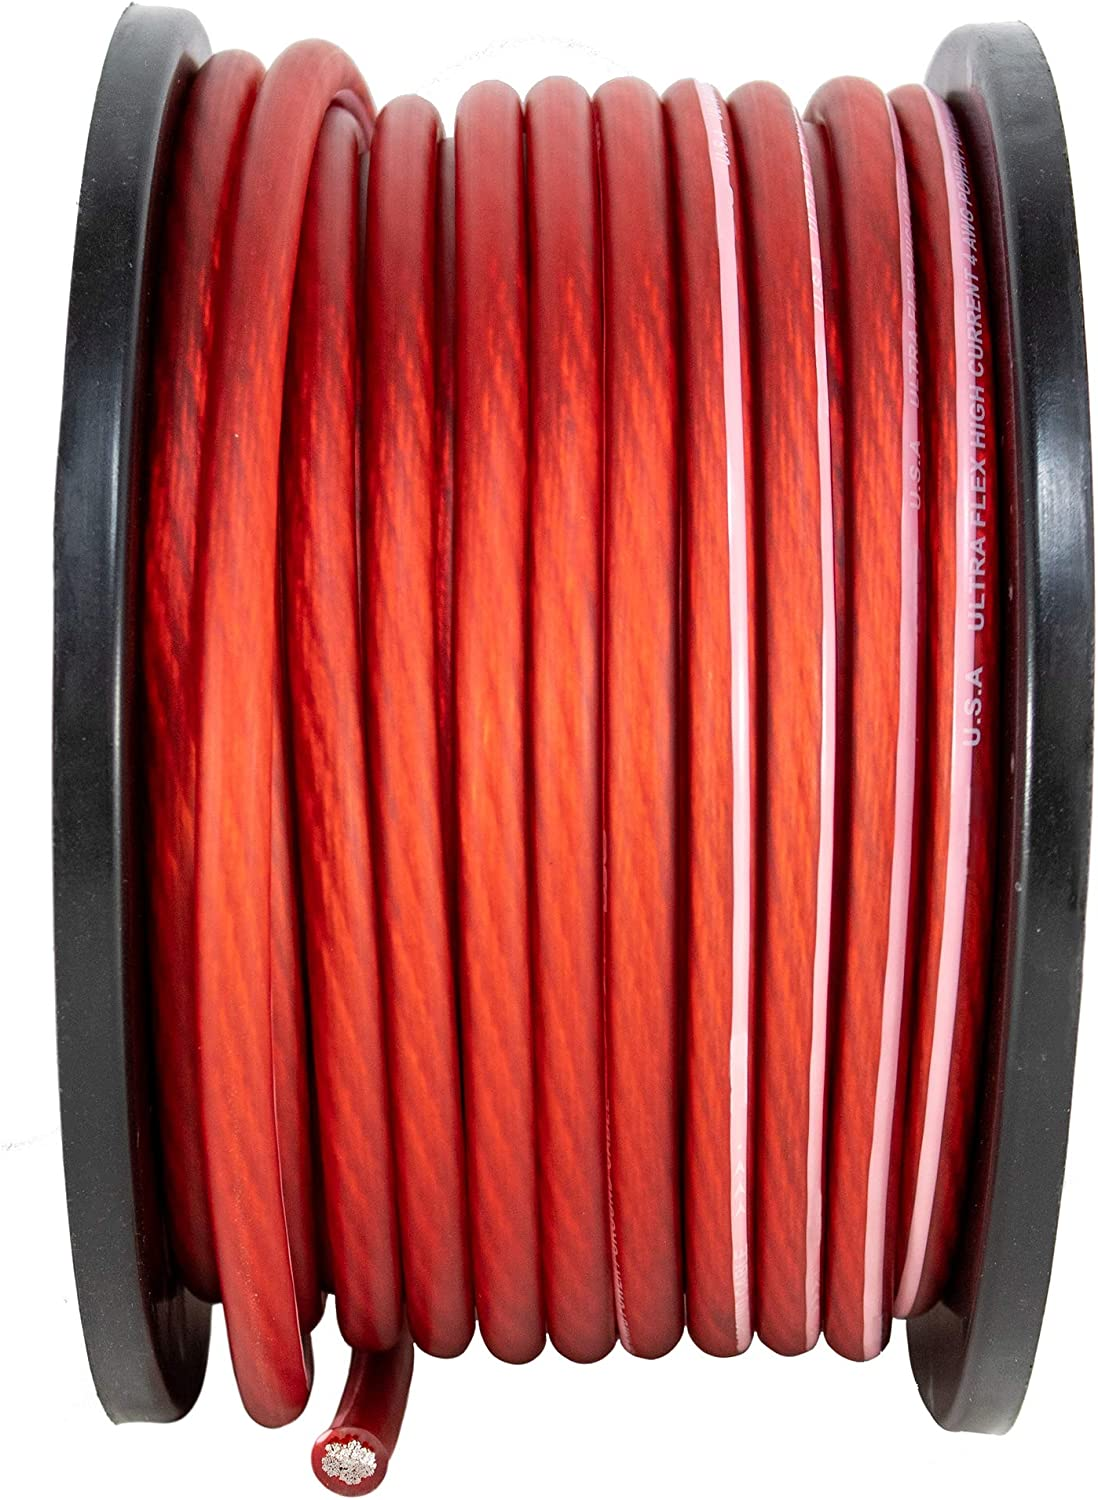 4 AWG 100FT Red Power Ground Wire Cable Copper Mix True AWG GA 81kry67Z2aLSL1500_